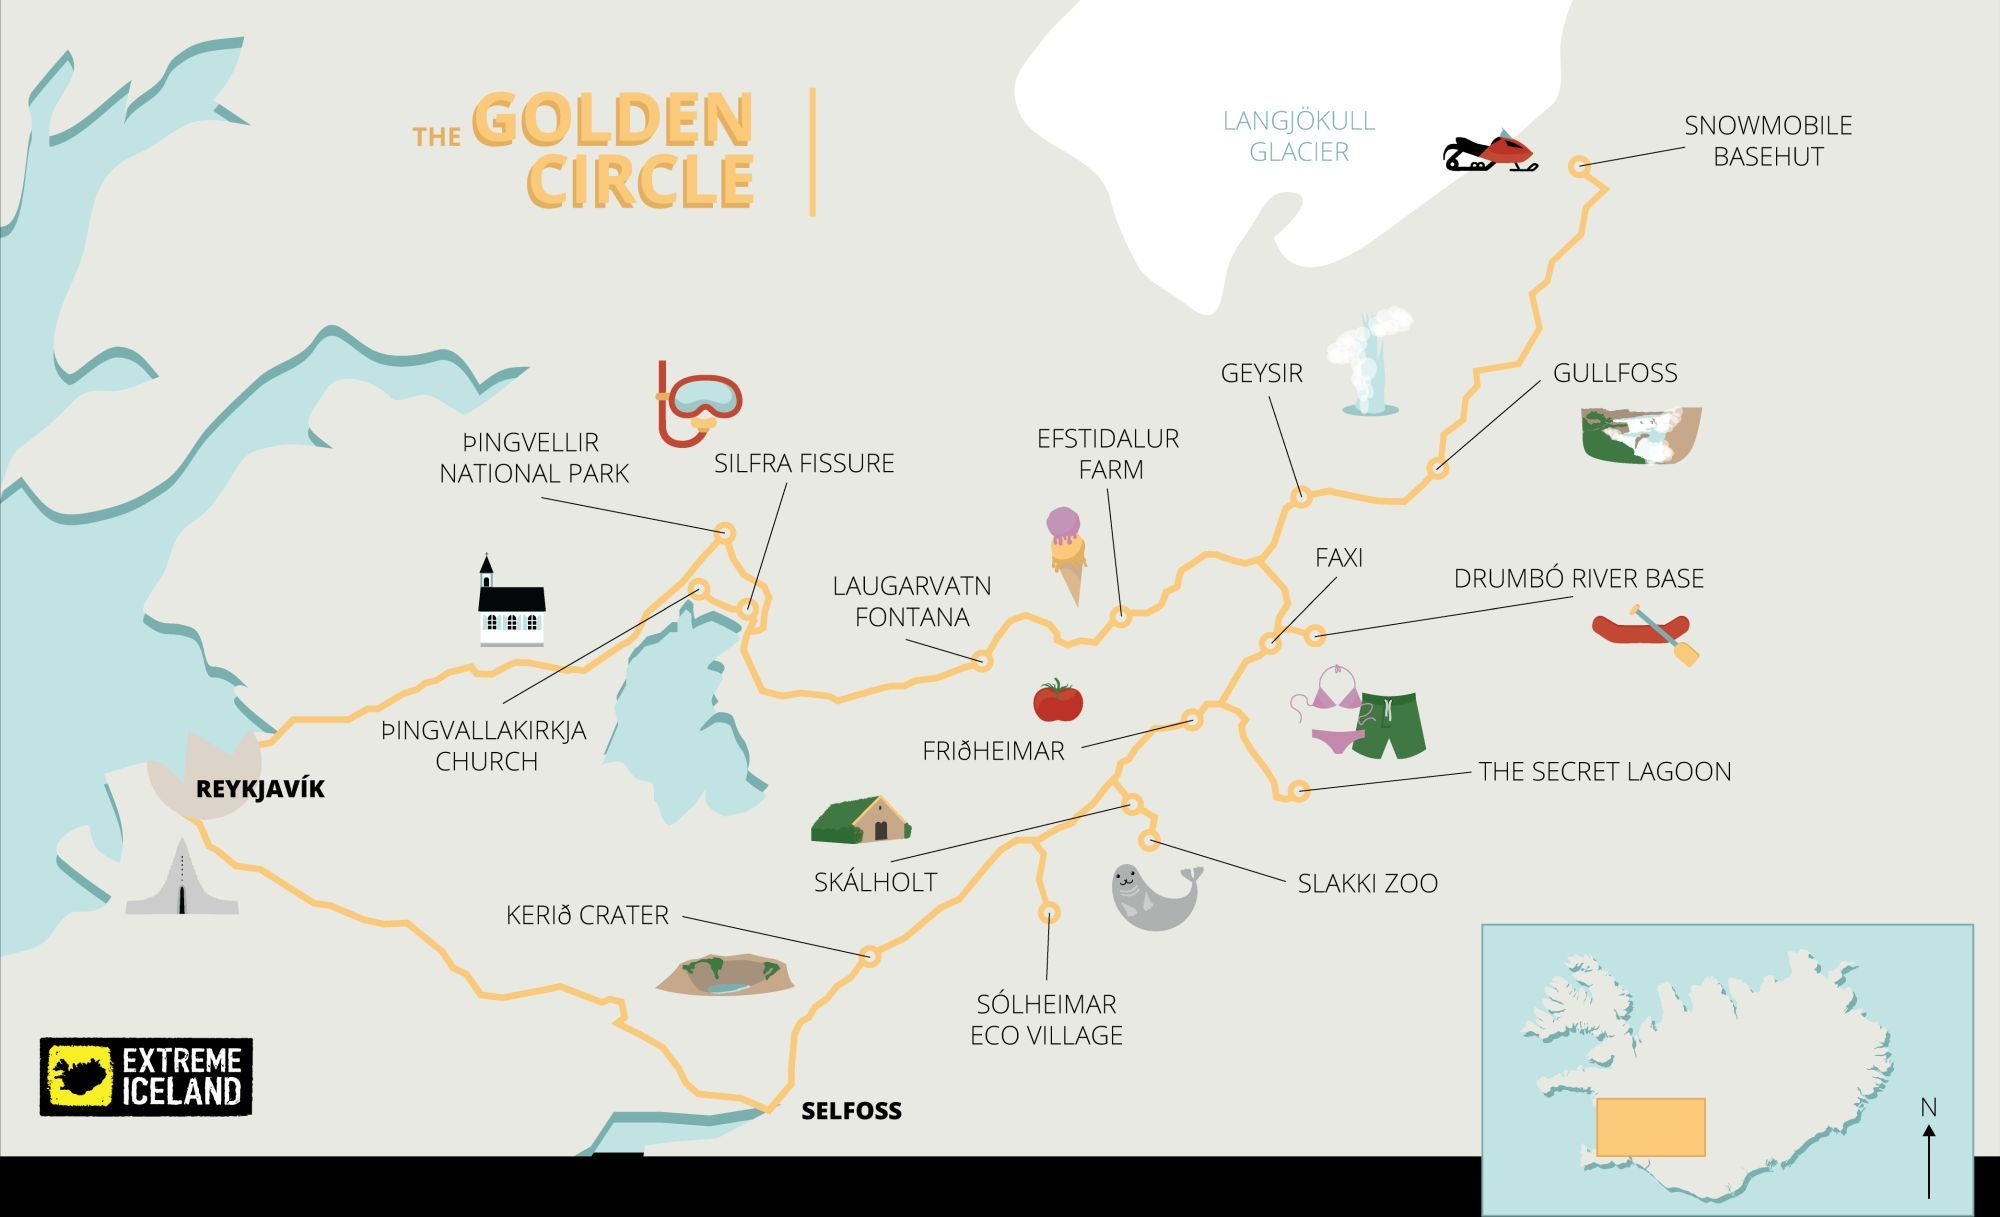 The Map of the Golden Circle | Travel in 2019 | Golden circle ... Iceland Golden Circle Map on golden circle tours fi, golden circle knights of code, golden circle river cruises, golden circle reykjavik, reykjavik walking map, golden circle self drive, golden circle tour icelandair, golden circle emblem, us 23 map, reykjanes ridge on map, reykjavik landmarks map, golden circle with points, skaftafell glacier on a map, reykjavik world map, golden circle previews, 16th century russia map, thingvellir national park map, monte carlo walking map,